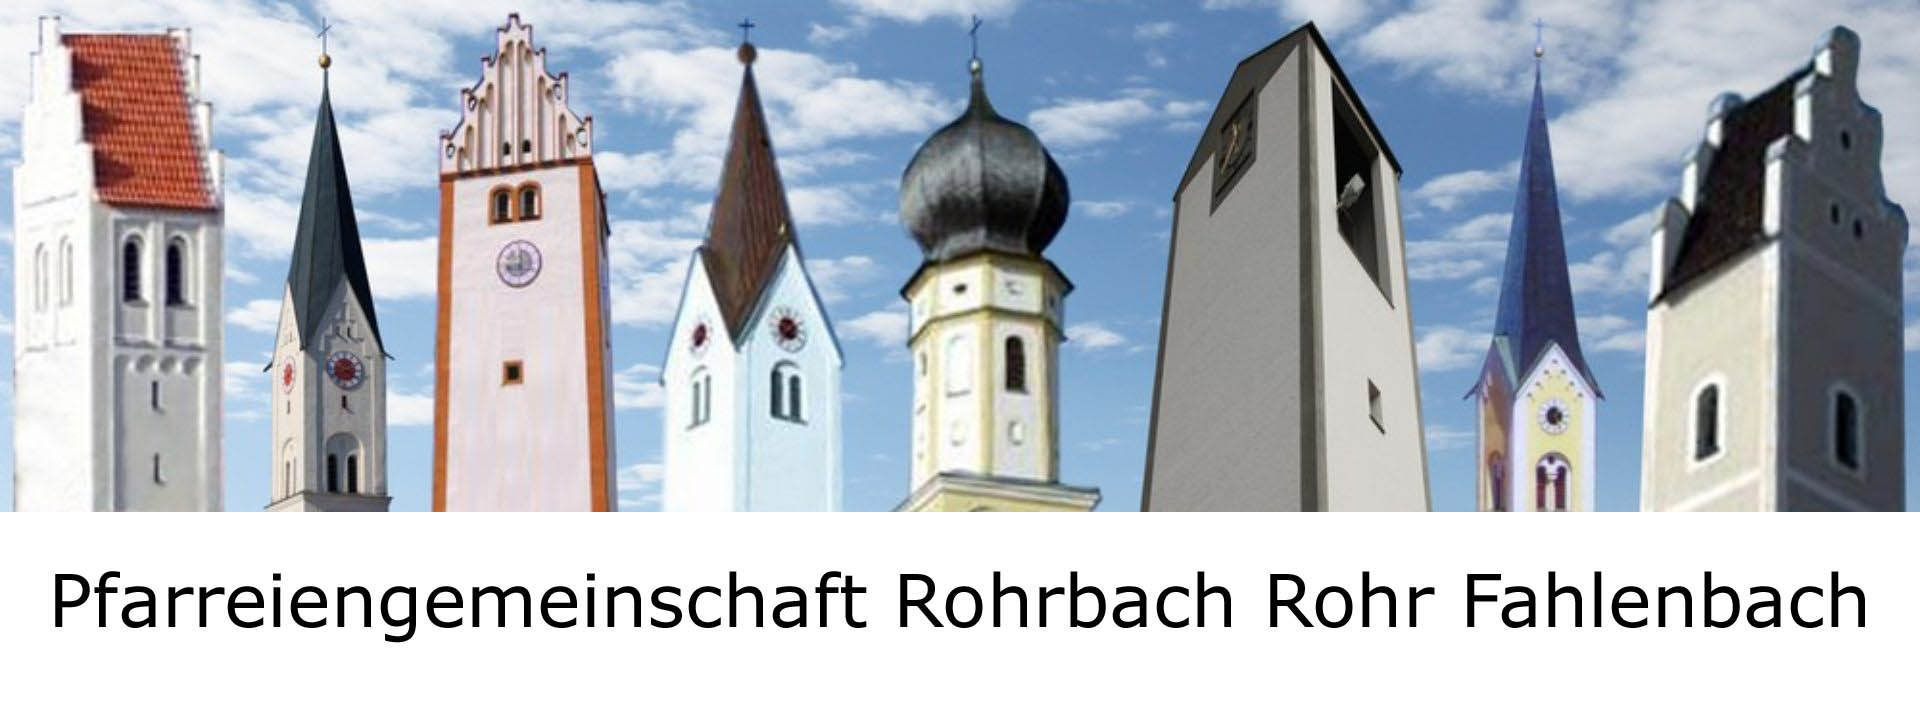 Pfarreiengemeinschaft Rohrbach-Rohr-Fahlenbach